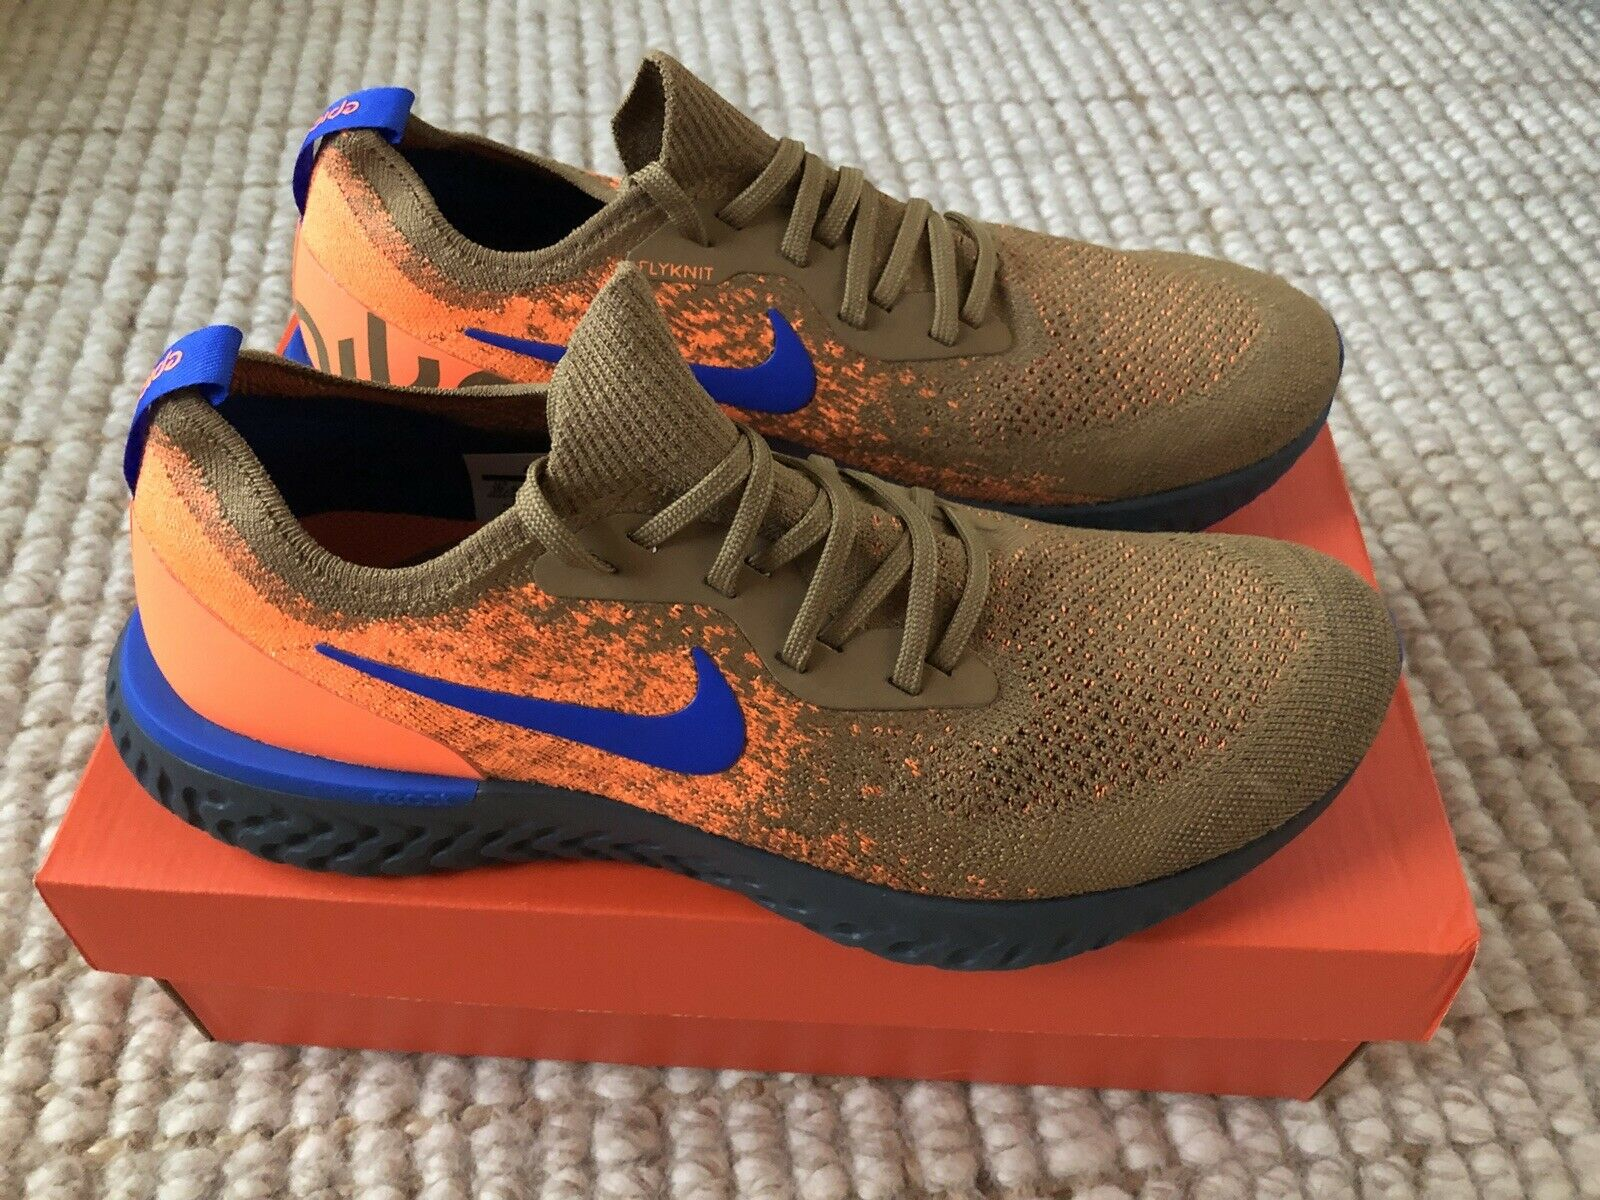 New Nike Mens Epic React Flyknit Size 10.5 golden Beige Racer blueee AV8068 200